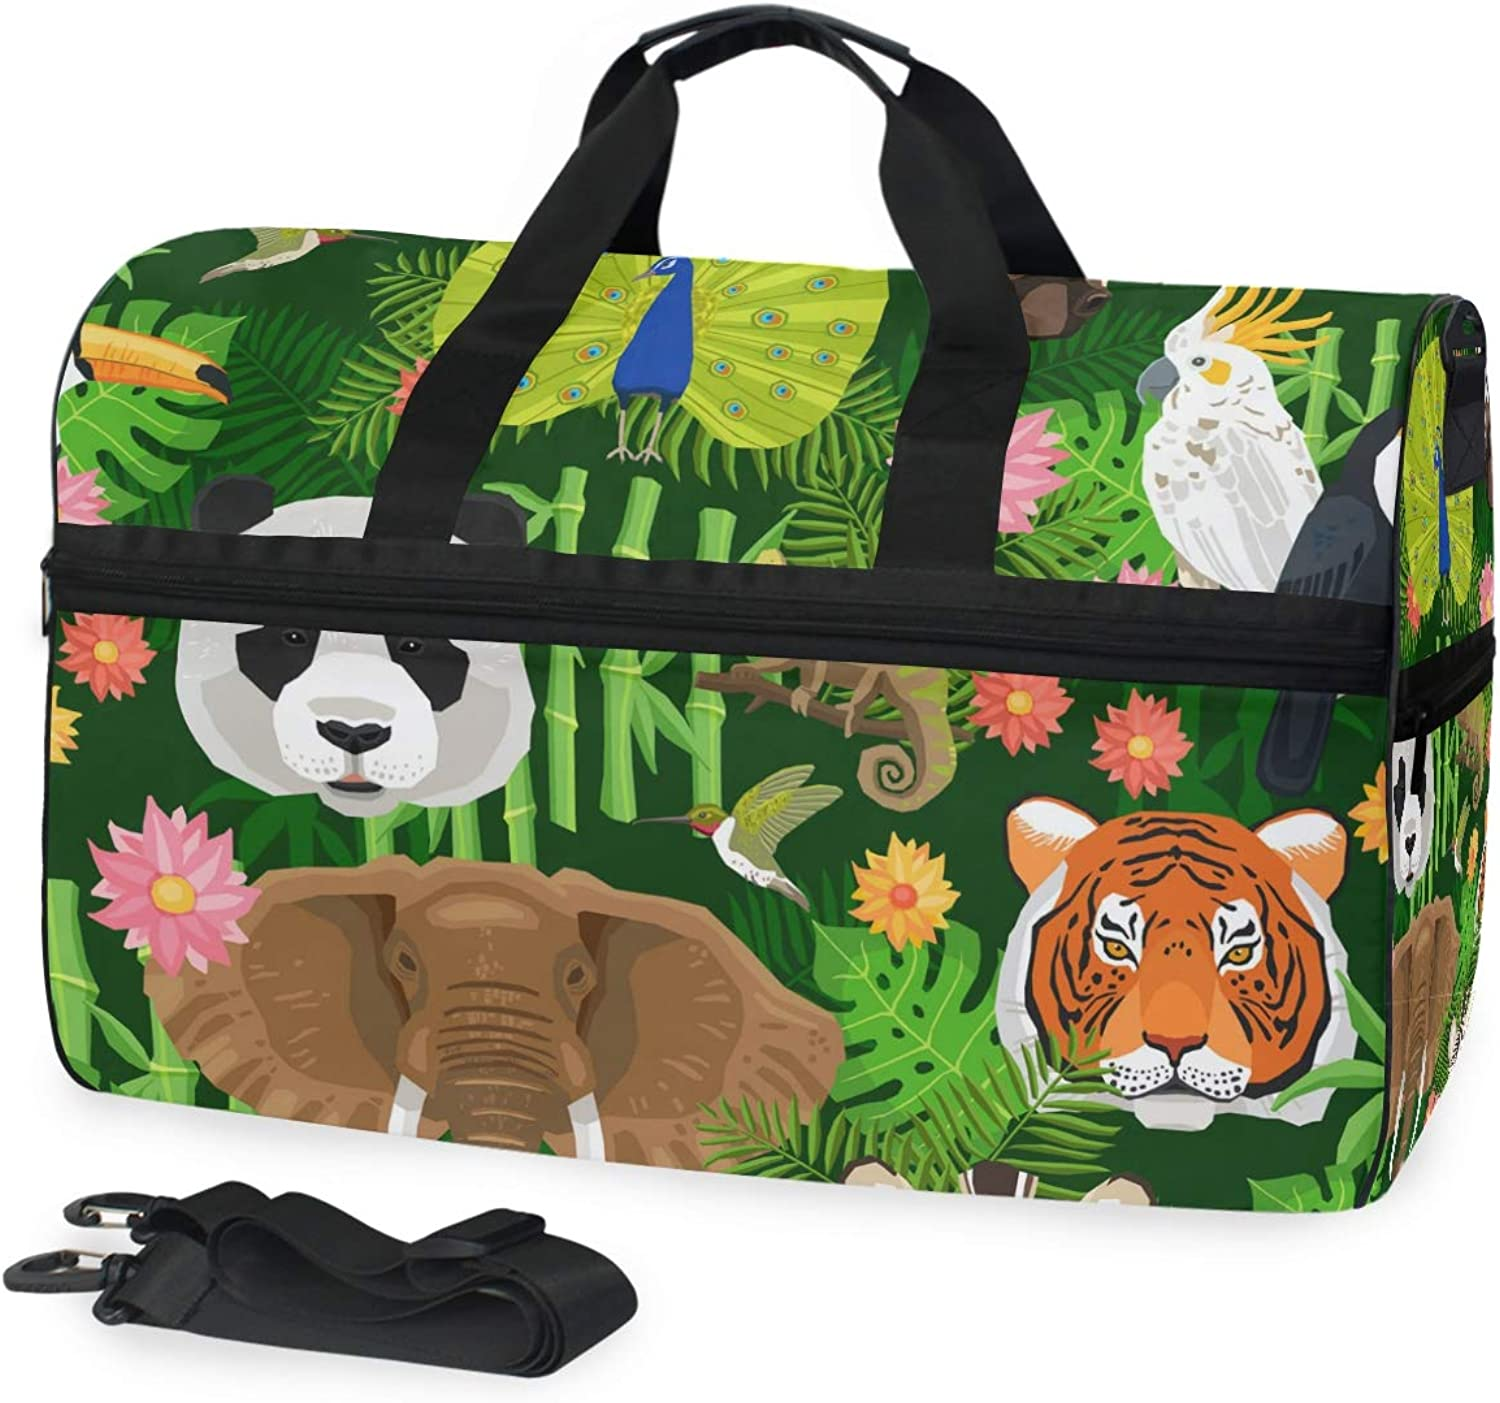 4870b3738323ab FANTAZIO Animals Peacock Tiger Elepant Parred Duffle Bag Gym Bag Travel  Duffel with Adjustable Strap Panda Sports nnnupx2781-Sporting goods